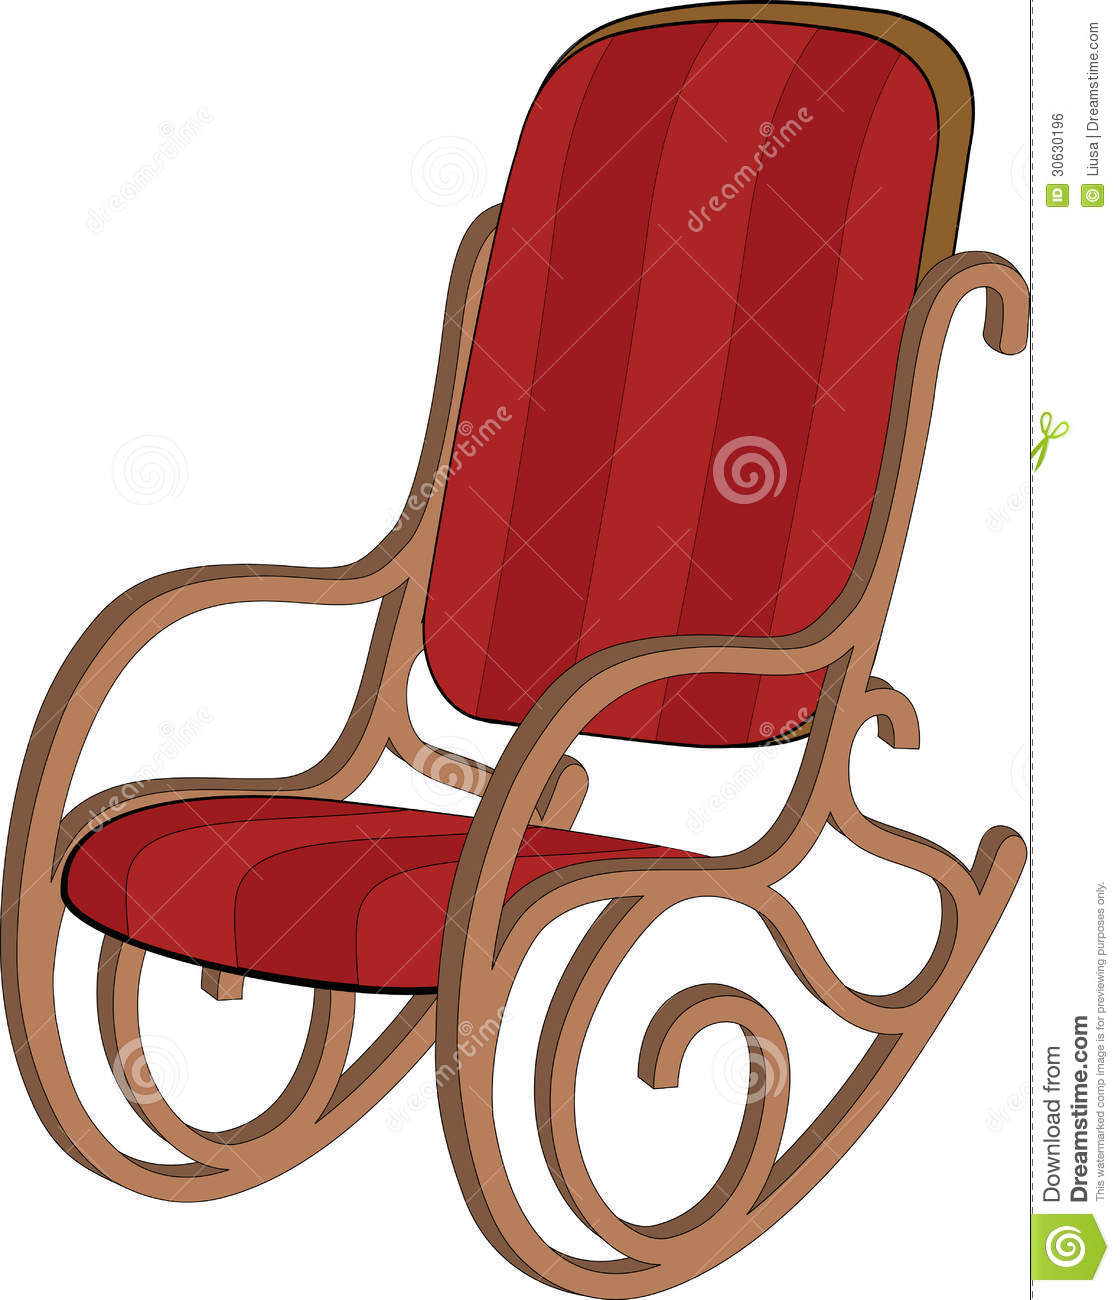 Red Rocking Chair Clipart ~ Red wooden rocking chair royalty free stock image